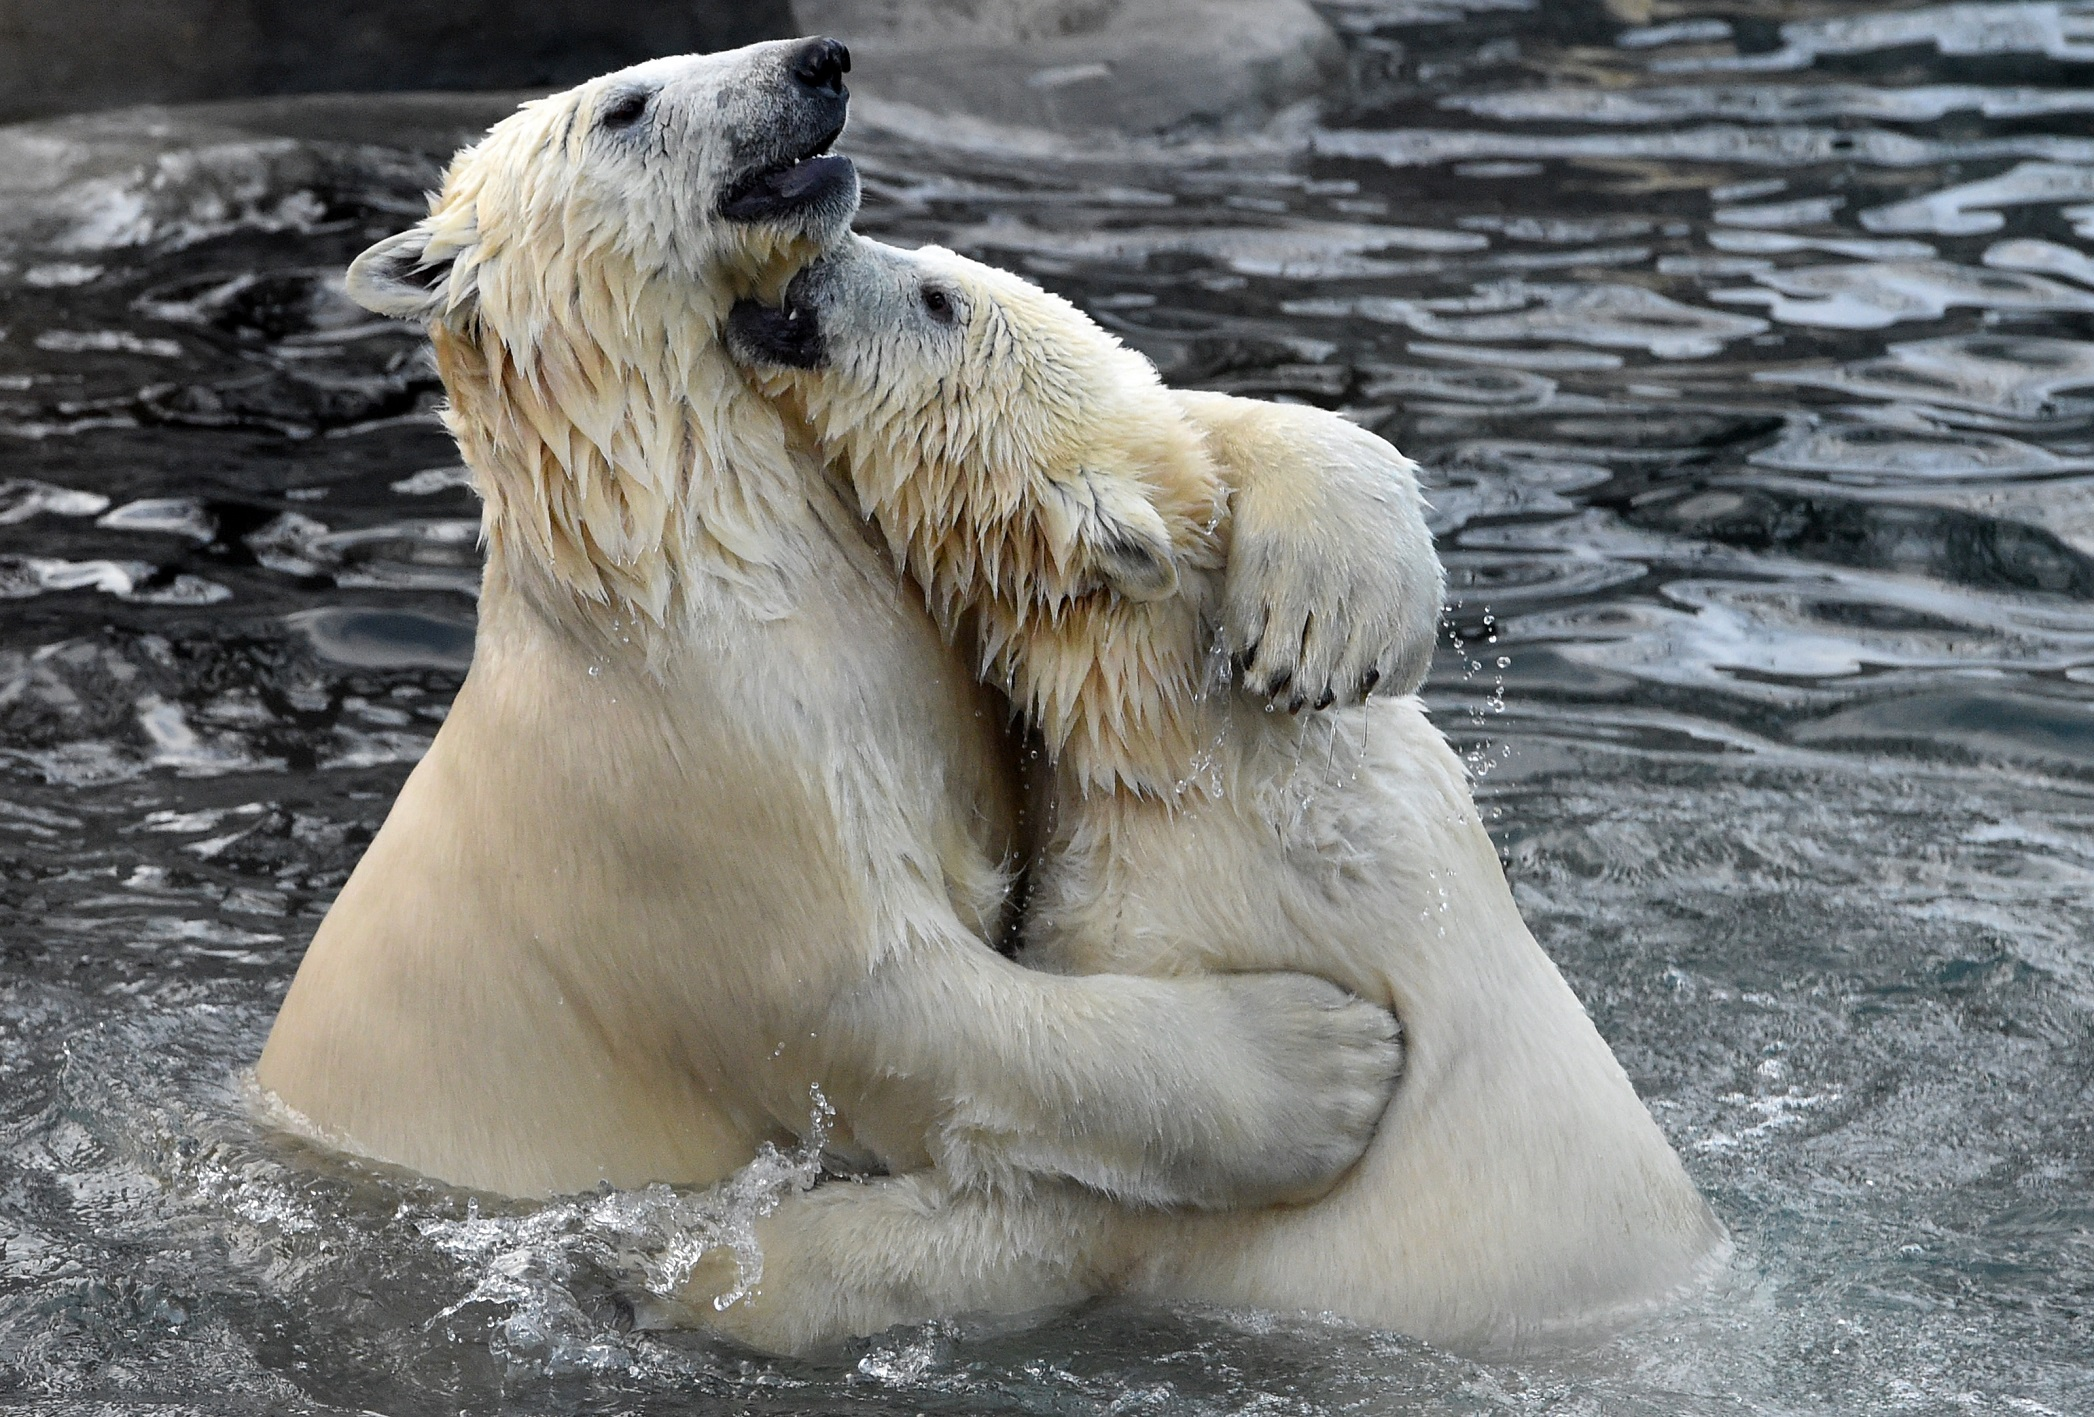 Two polar bears play in the water in their enclosure at Moscow's zoo on December 10, 2015. / AFP / VASILY MAXIMOV        (Photo credit should read VASILY MAXIMOV/AFP via Getty Images)